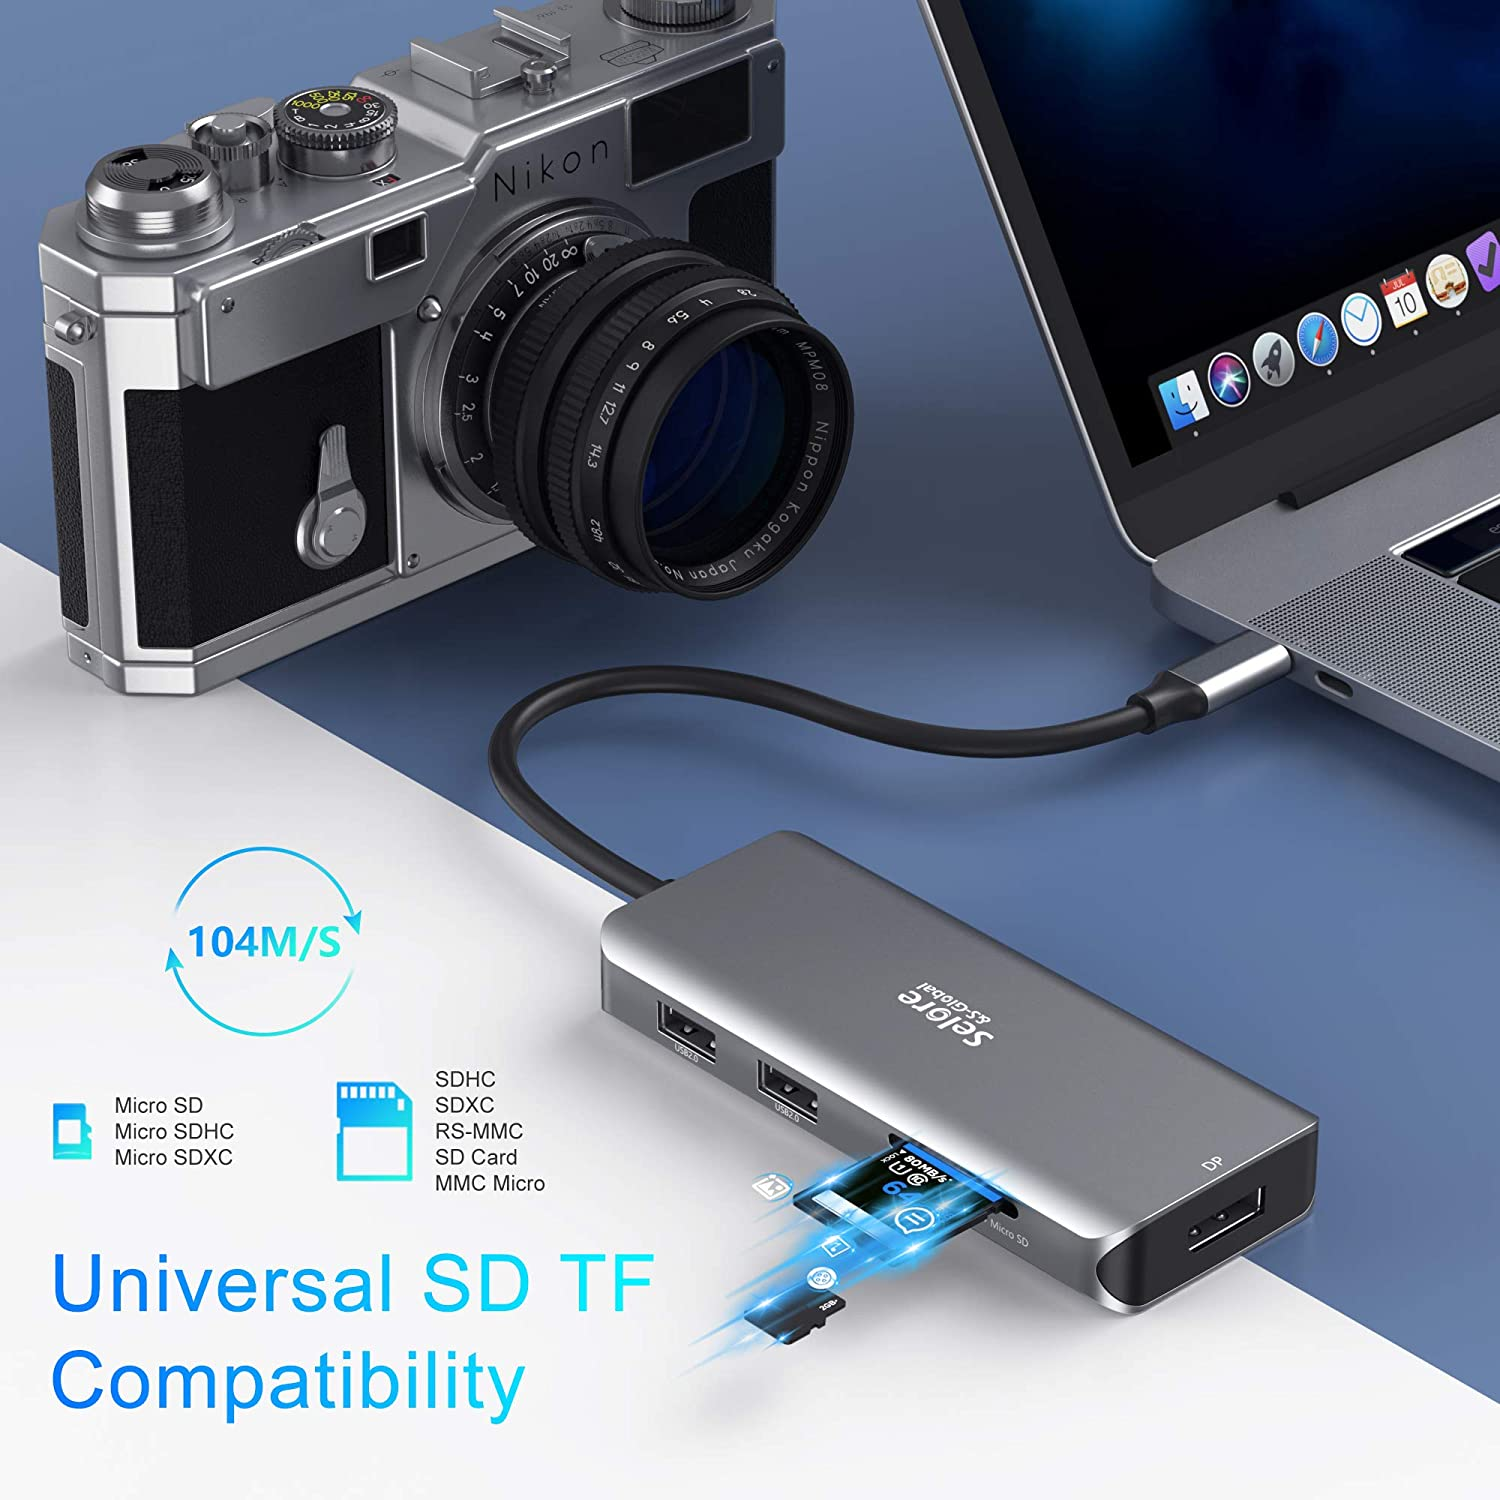 Lenovo Yoga,Huawei Matebook X pro,etc 100W PD for Dell XPS 13//15 USB C Triple Display Docking Station Dual HDMI Adapter,9 in 1 USB-C to Displayport Adapter SD TF Card Reader 2USB 2.0 1 USB 3.0